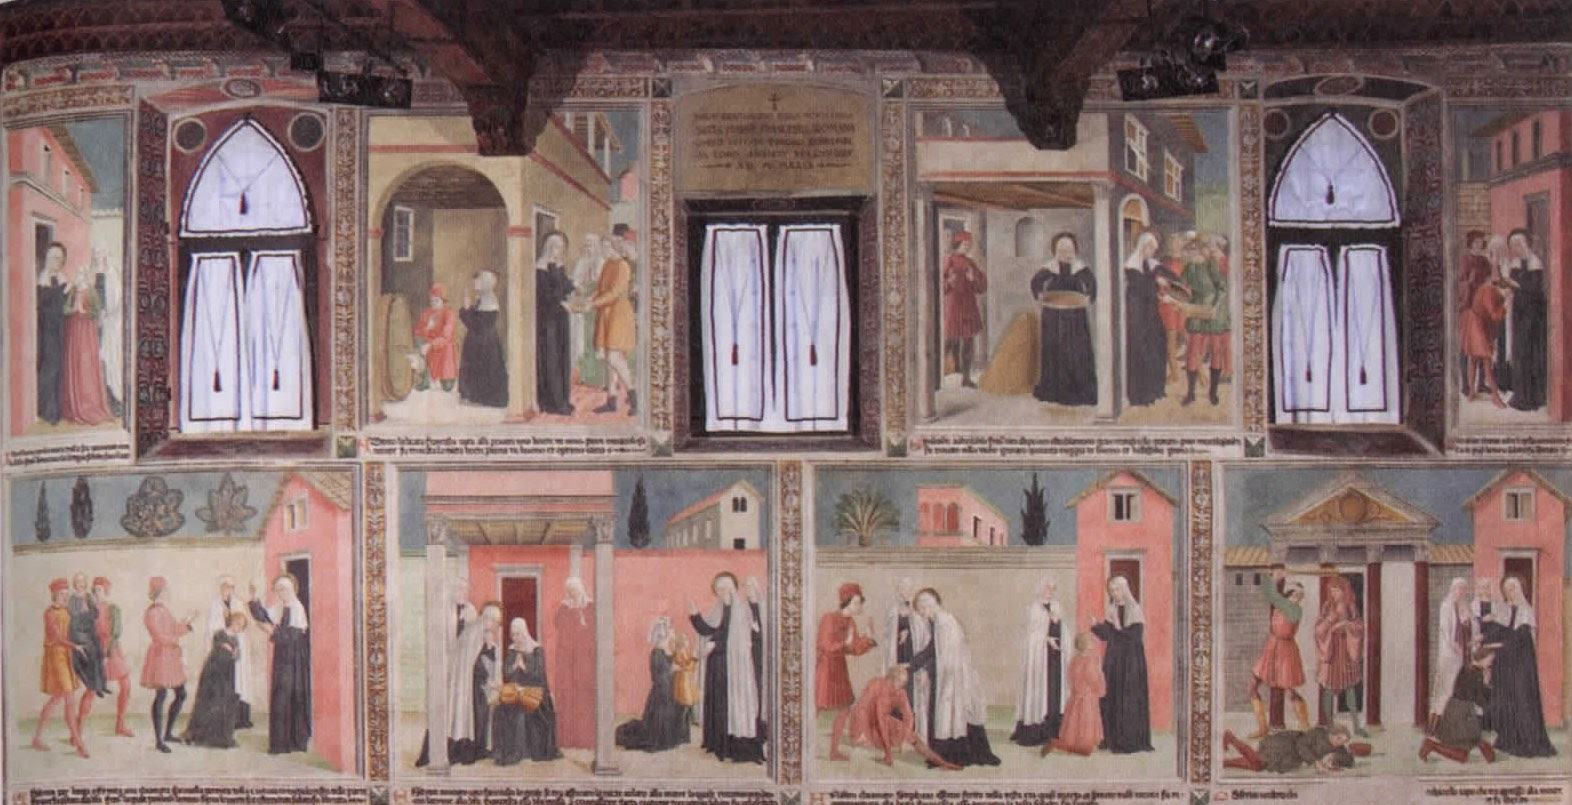 Frescoes by Antoniazzo Romano, Tor de' Specchi Monastery [ Source ]